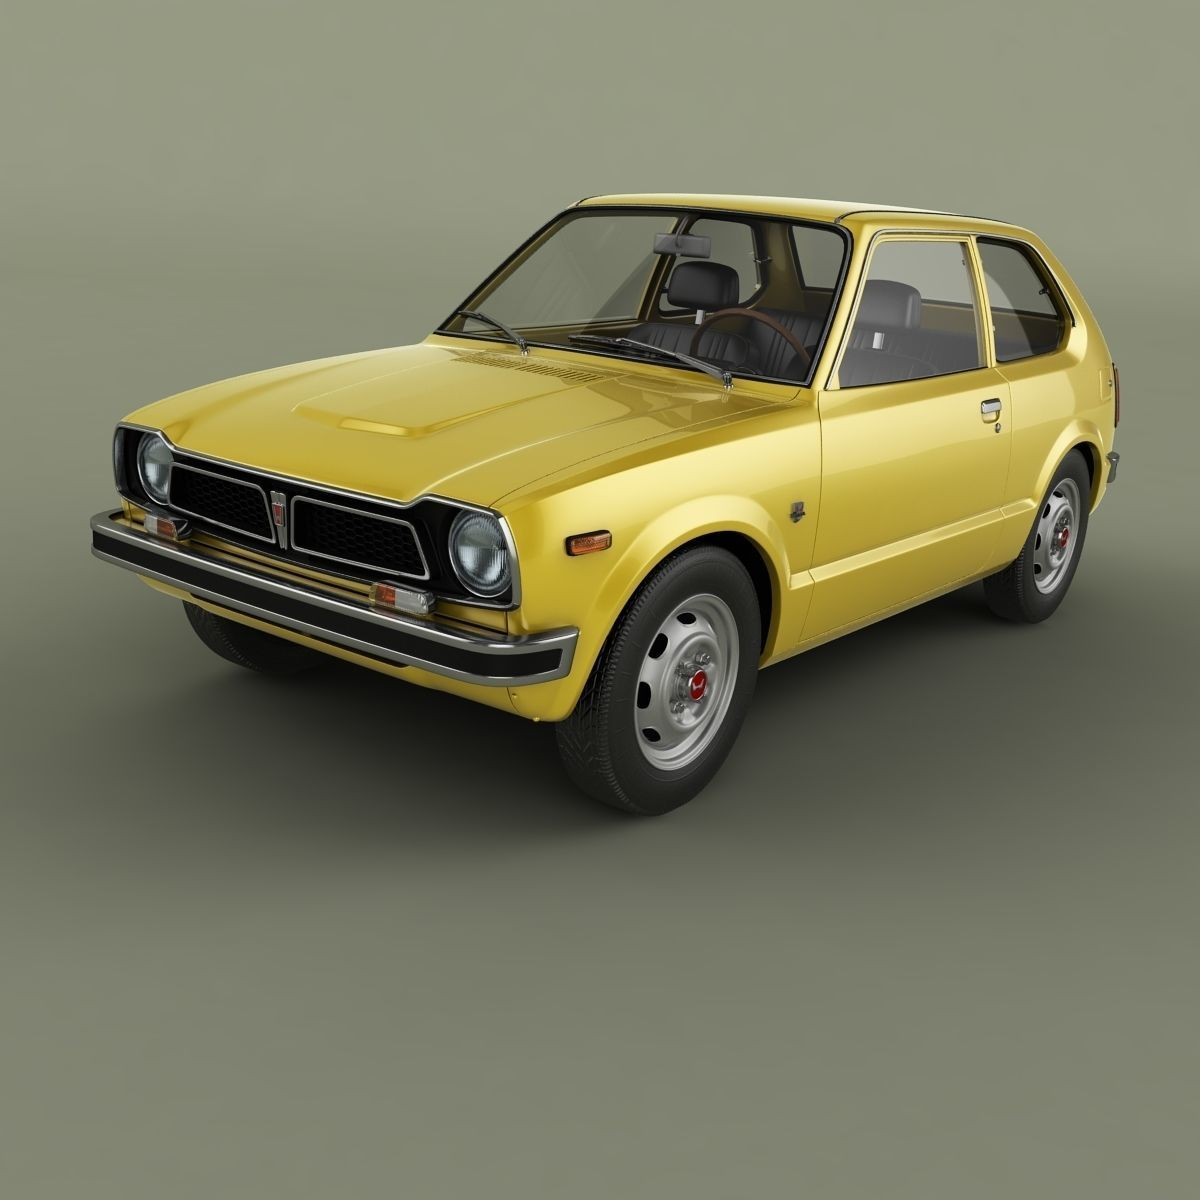 Honda Civic 2-door 1972